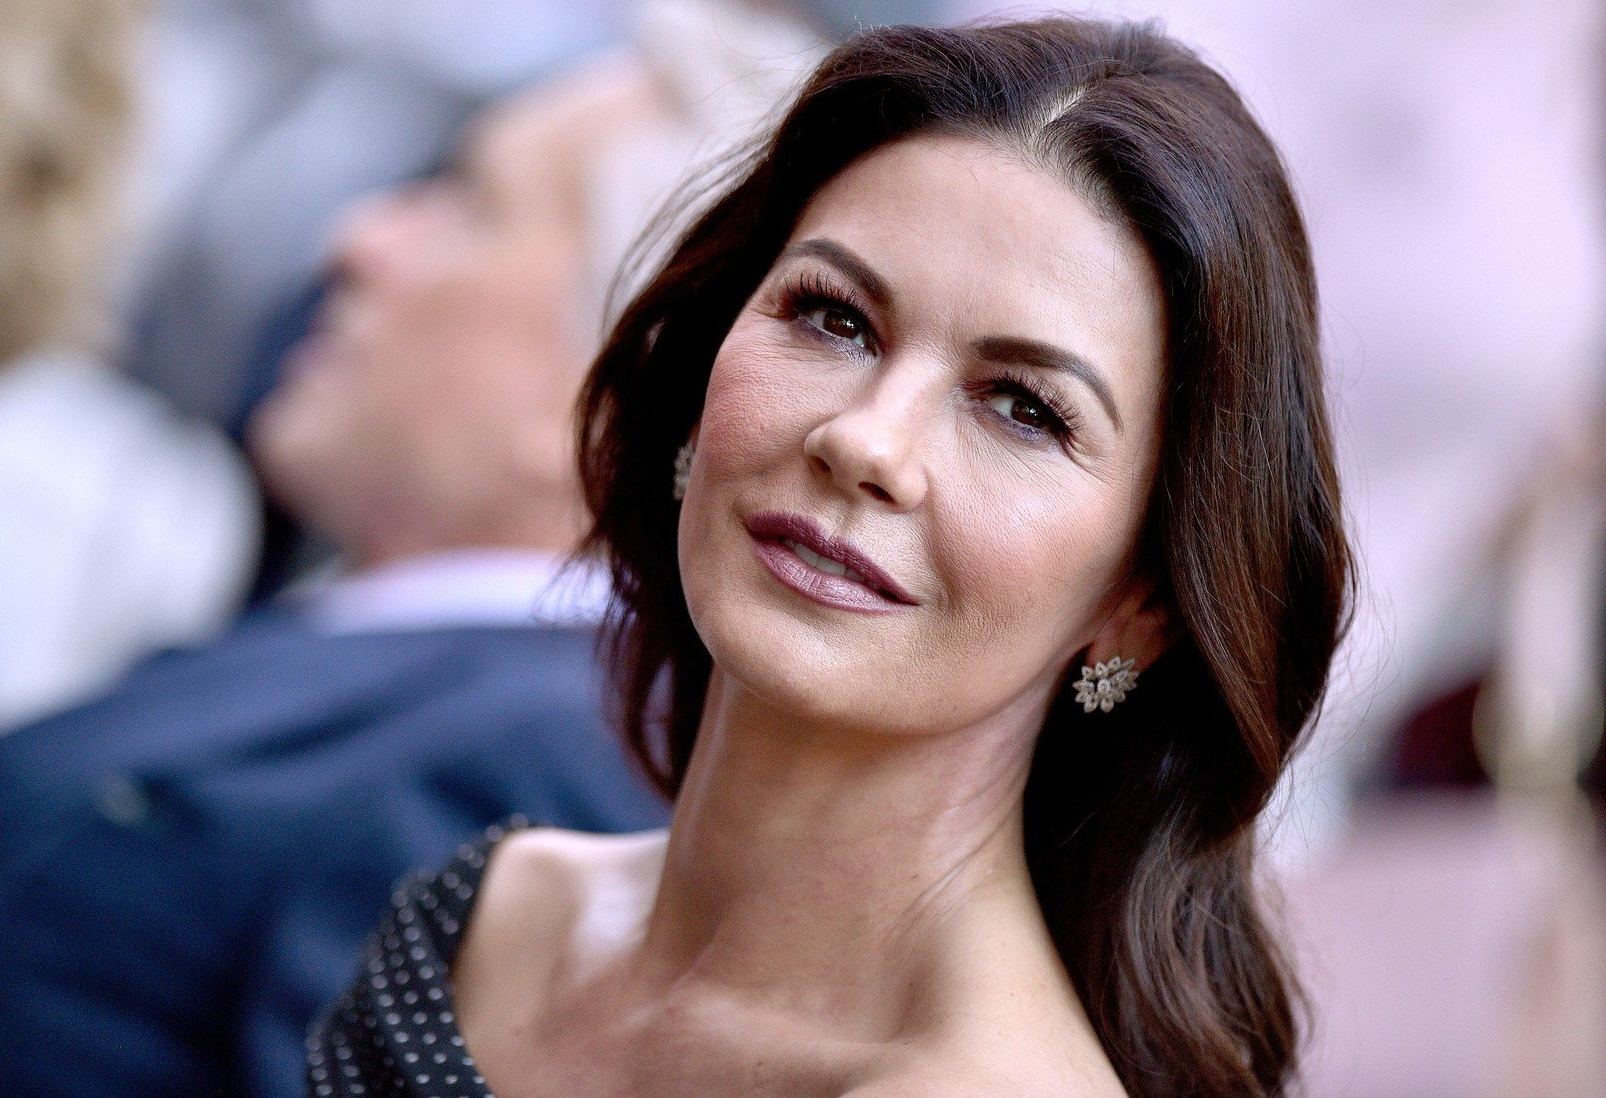 Catherine Zeta-Jones attends the ceremony honoring Michael Douglas with a star on the Hollywood Walk of Fame in Los Angeles, California on November 6th, 2018., Image: 394427104, License: Rights-managed, Restrictions: , Model Release: no, Credit line: Profimedia, Abaca